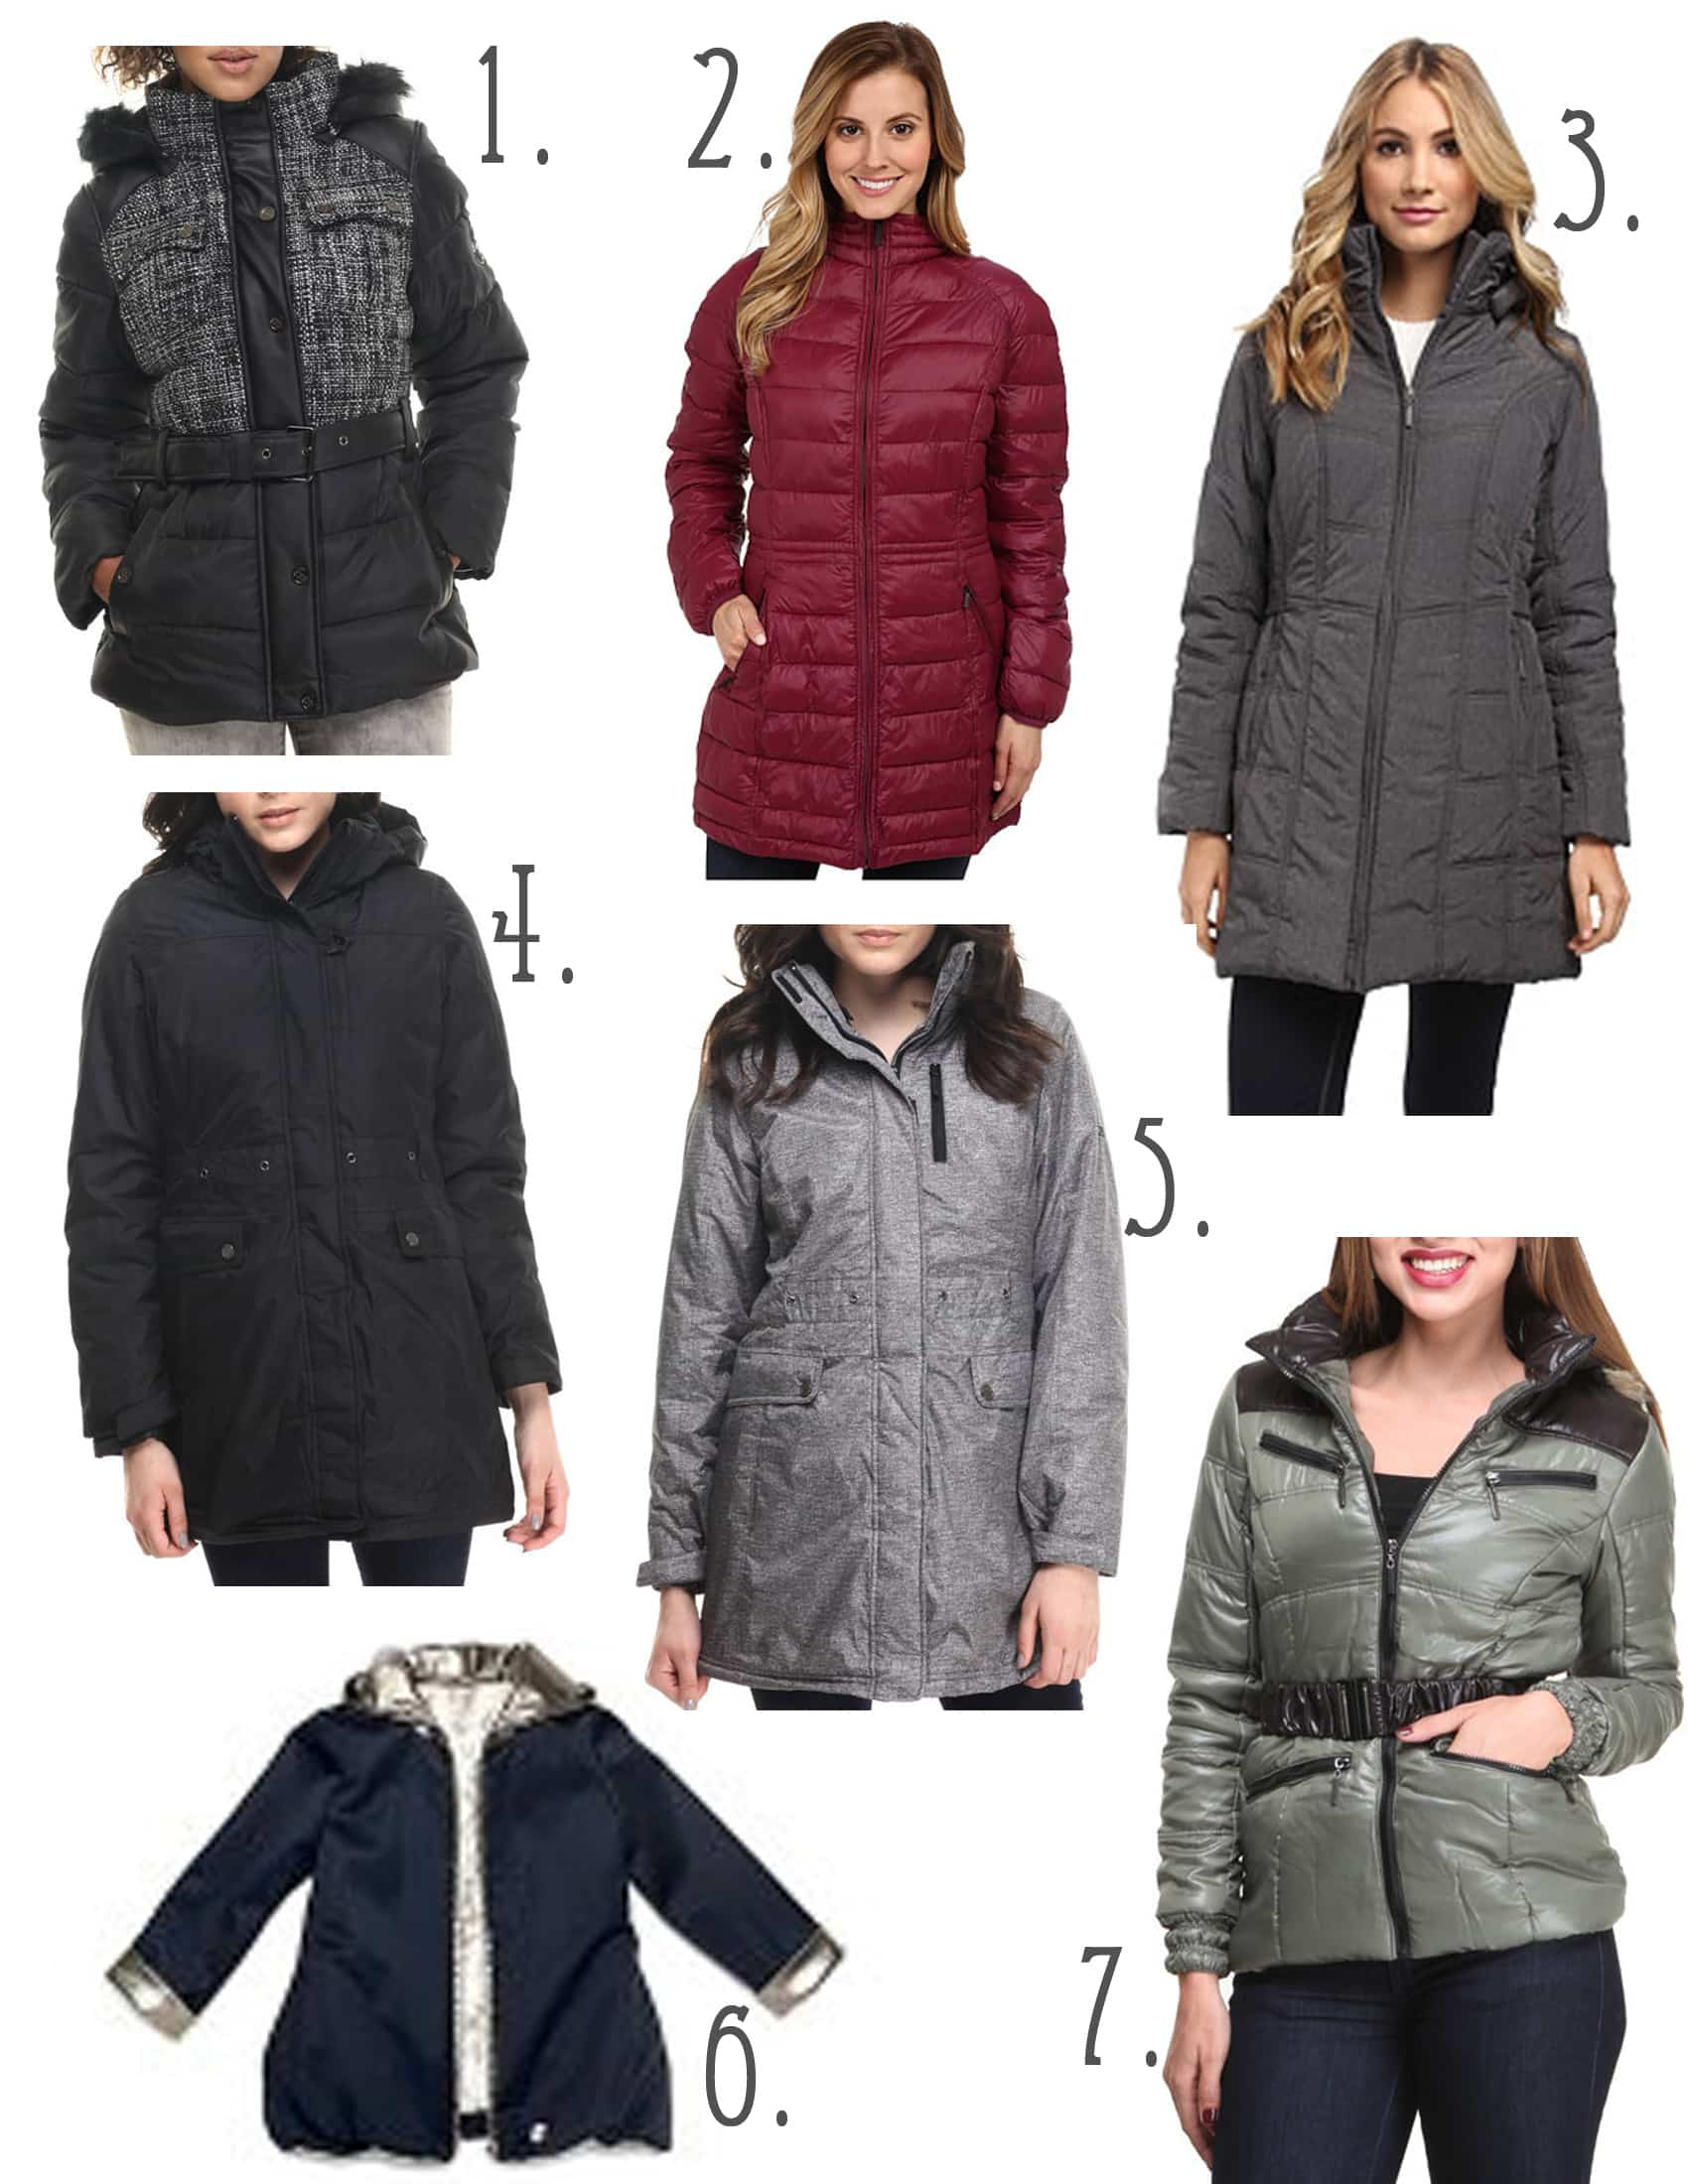 7 Stylish Bubble Jackets For Freezing Winter Days - Lady and the Blog 8c53673c3